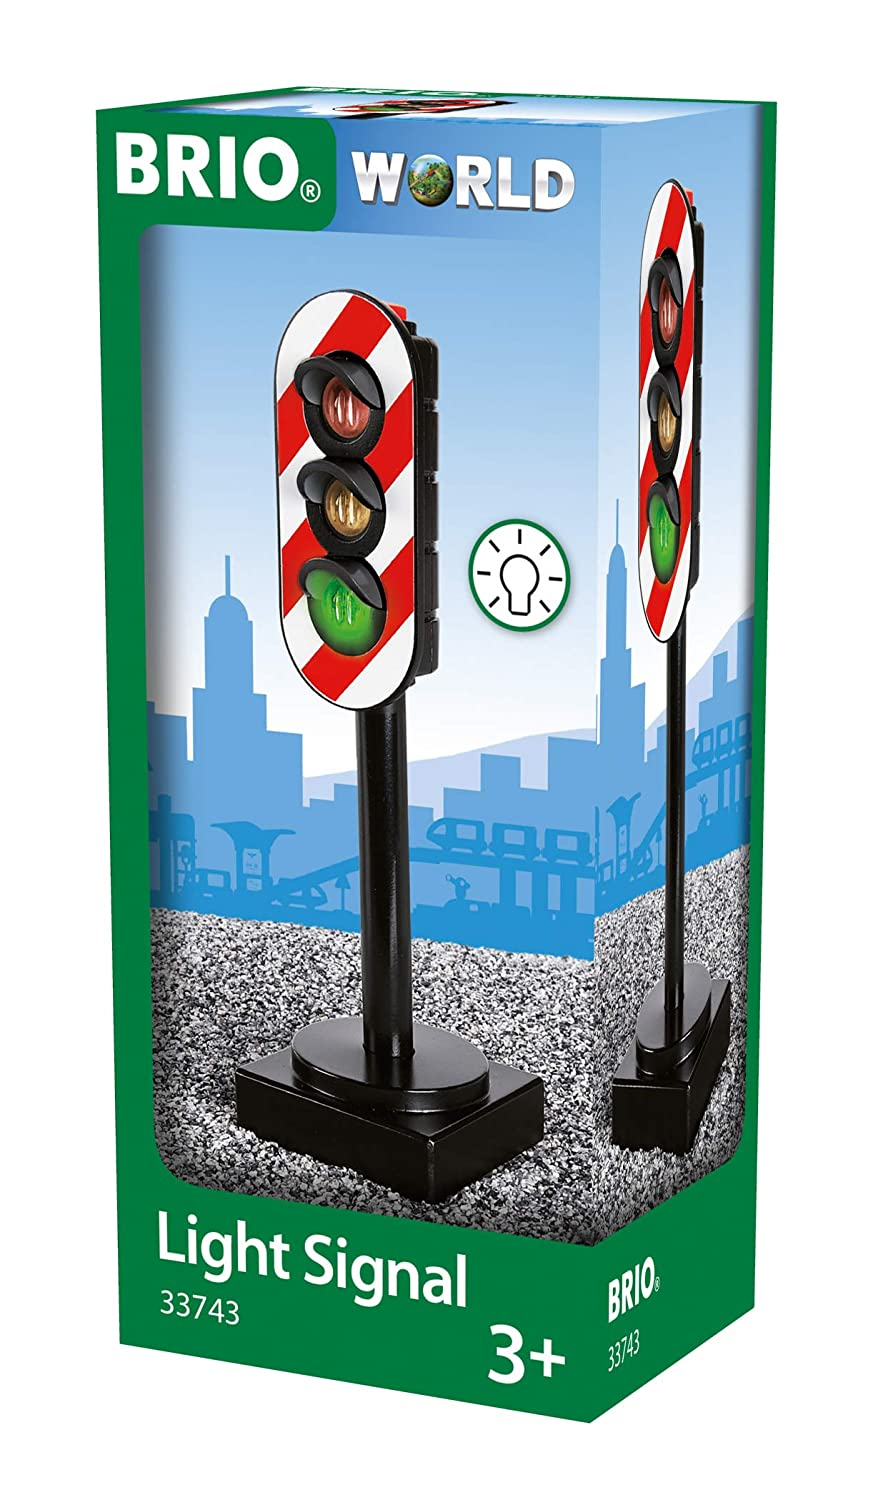 BRIO World - 33743 Light Signal | Toy Train Accessory for Kids Ages 3 and Up